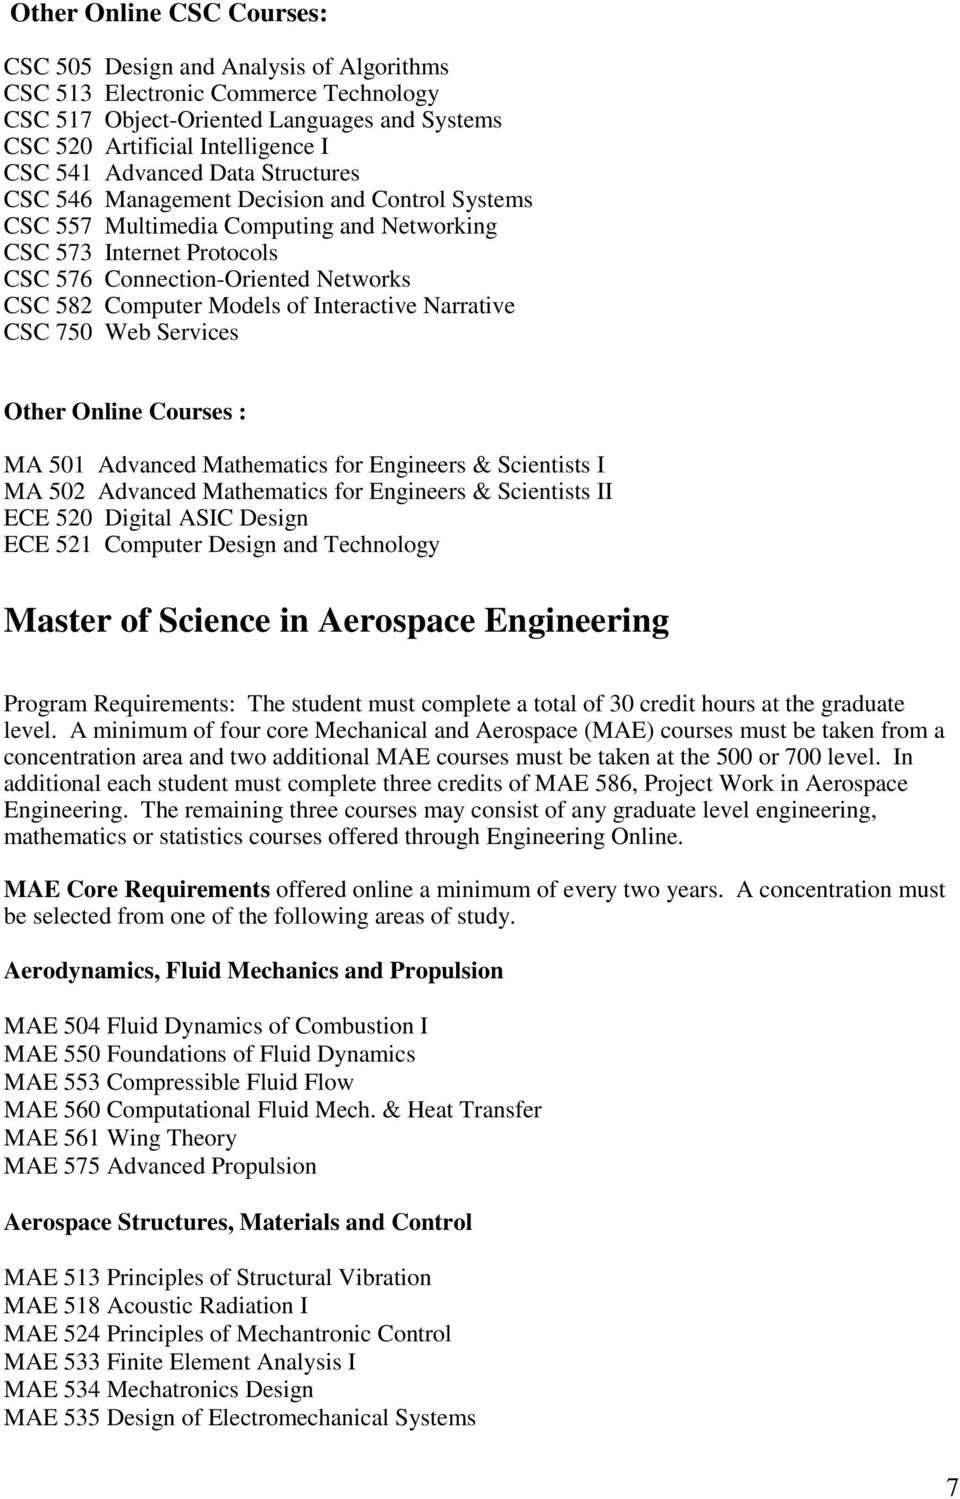 Models of Interactive Narrative CSC 750 Web Services Other Online Courses : MA 501 Advanced Mathematics for Engineers & Scientists I MA 502 Advanced Mathematics for Engineers & Scientists II ECE 520